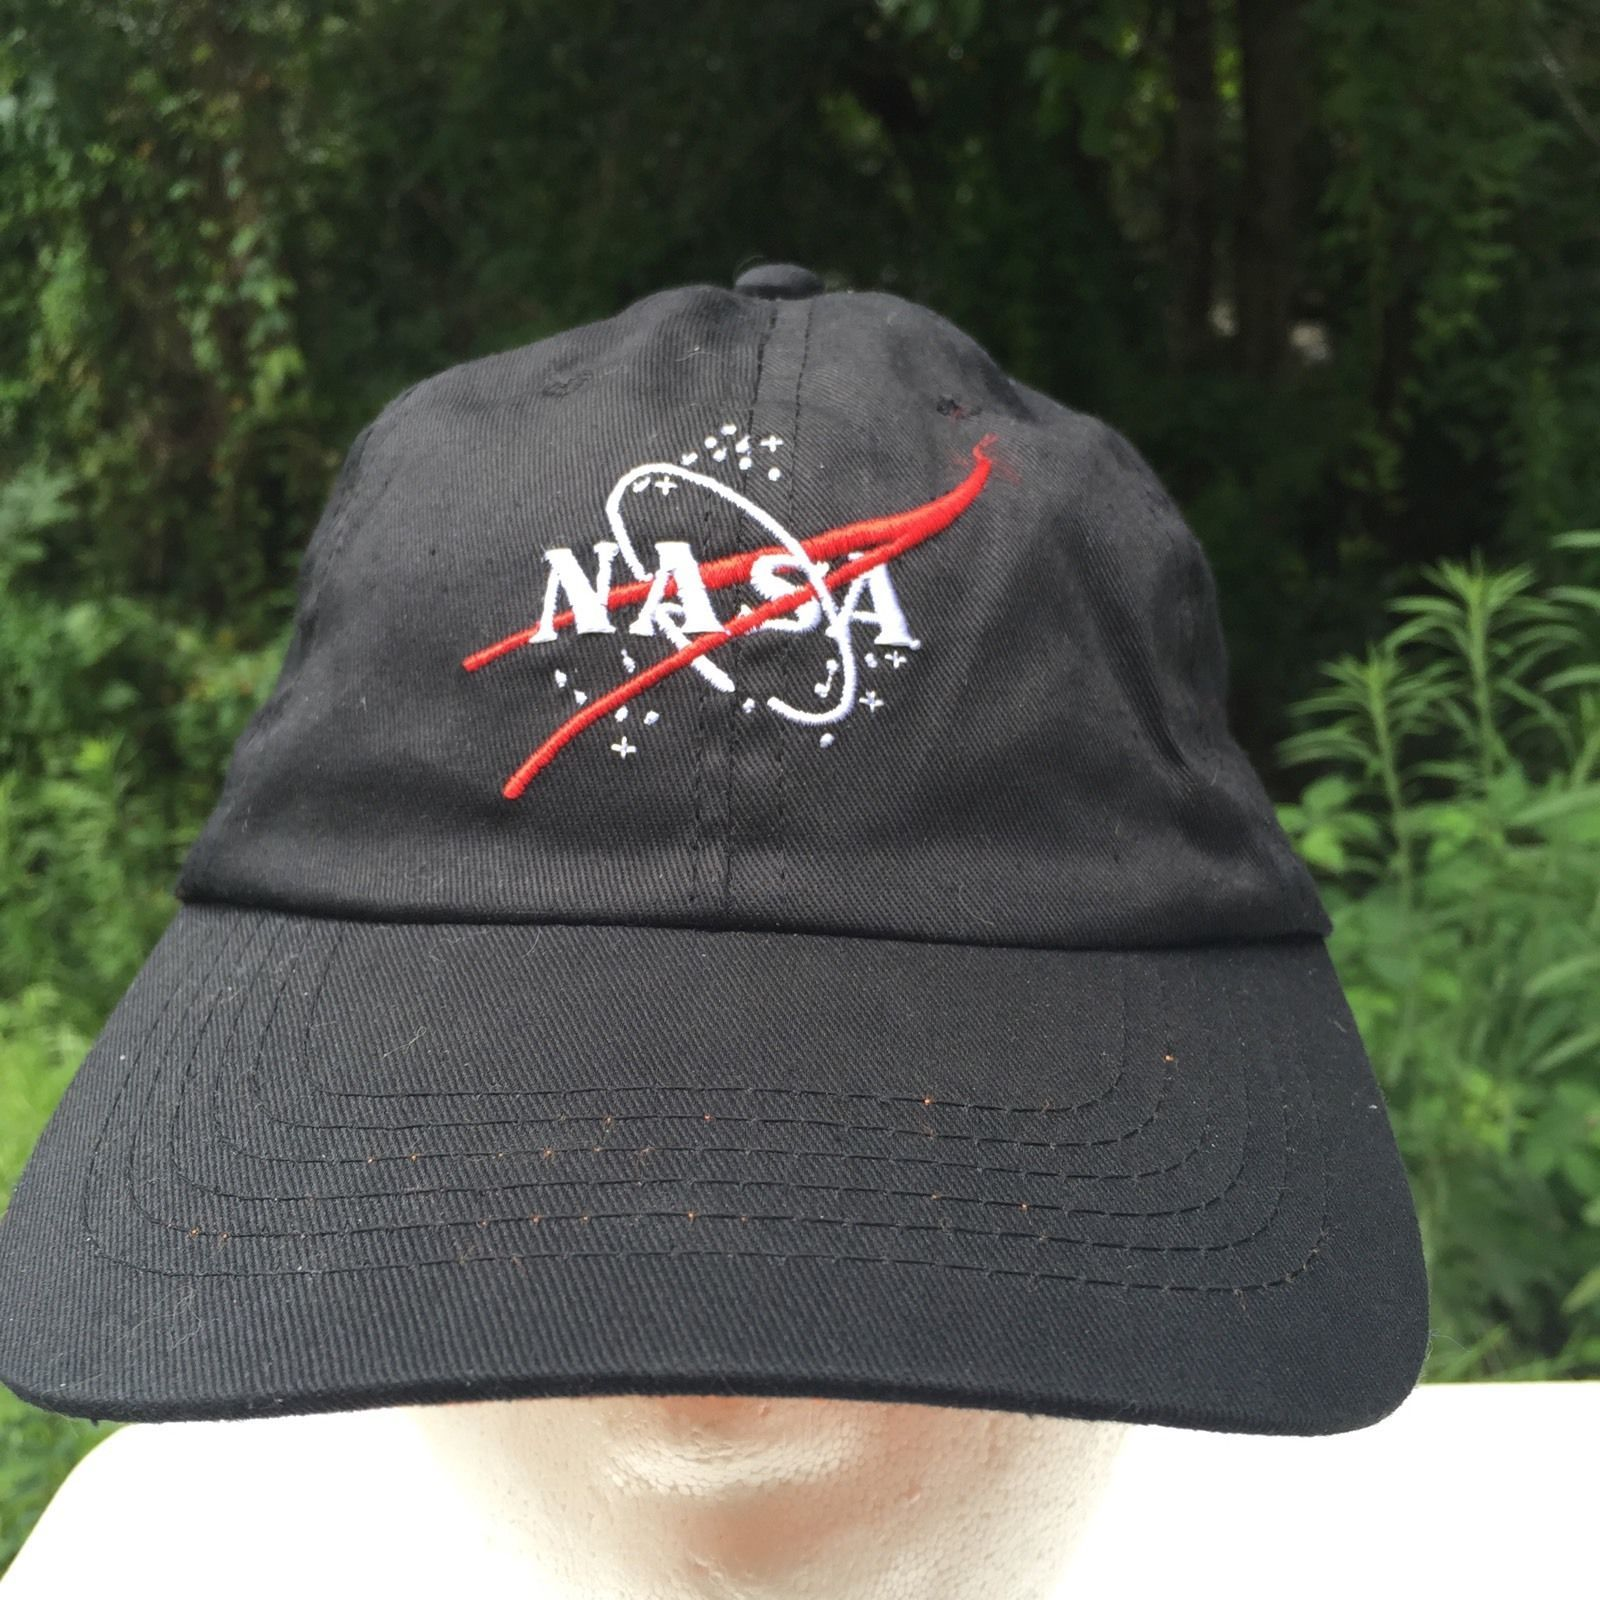 Primary image for Youth Sz 56cm NASA Velcro Adjustable Hat Cap Embroidered Black Trucker